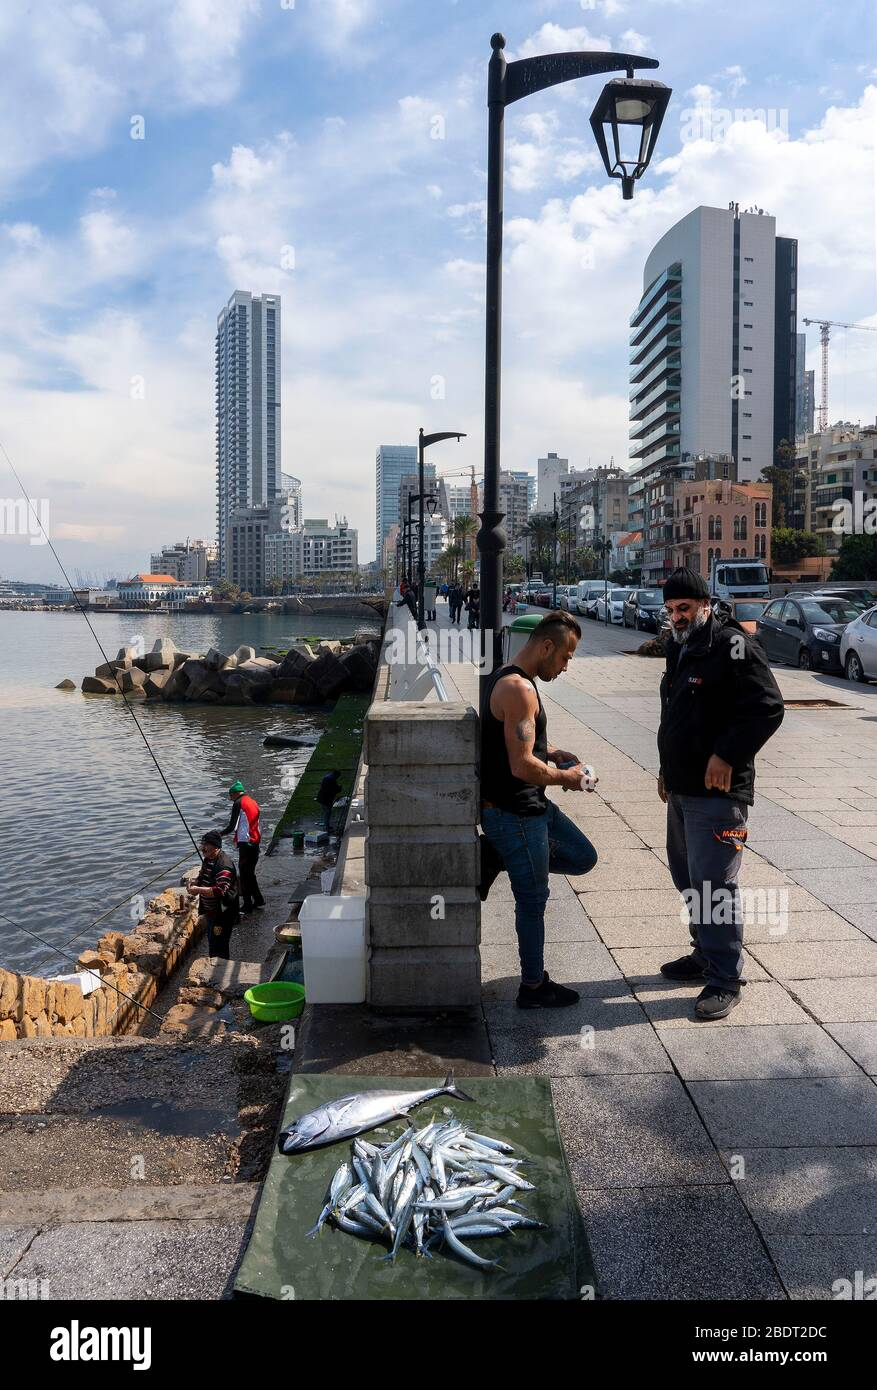 Corniche,Beirut: fishermen selling theur catch on Corniche Stock Photo